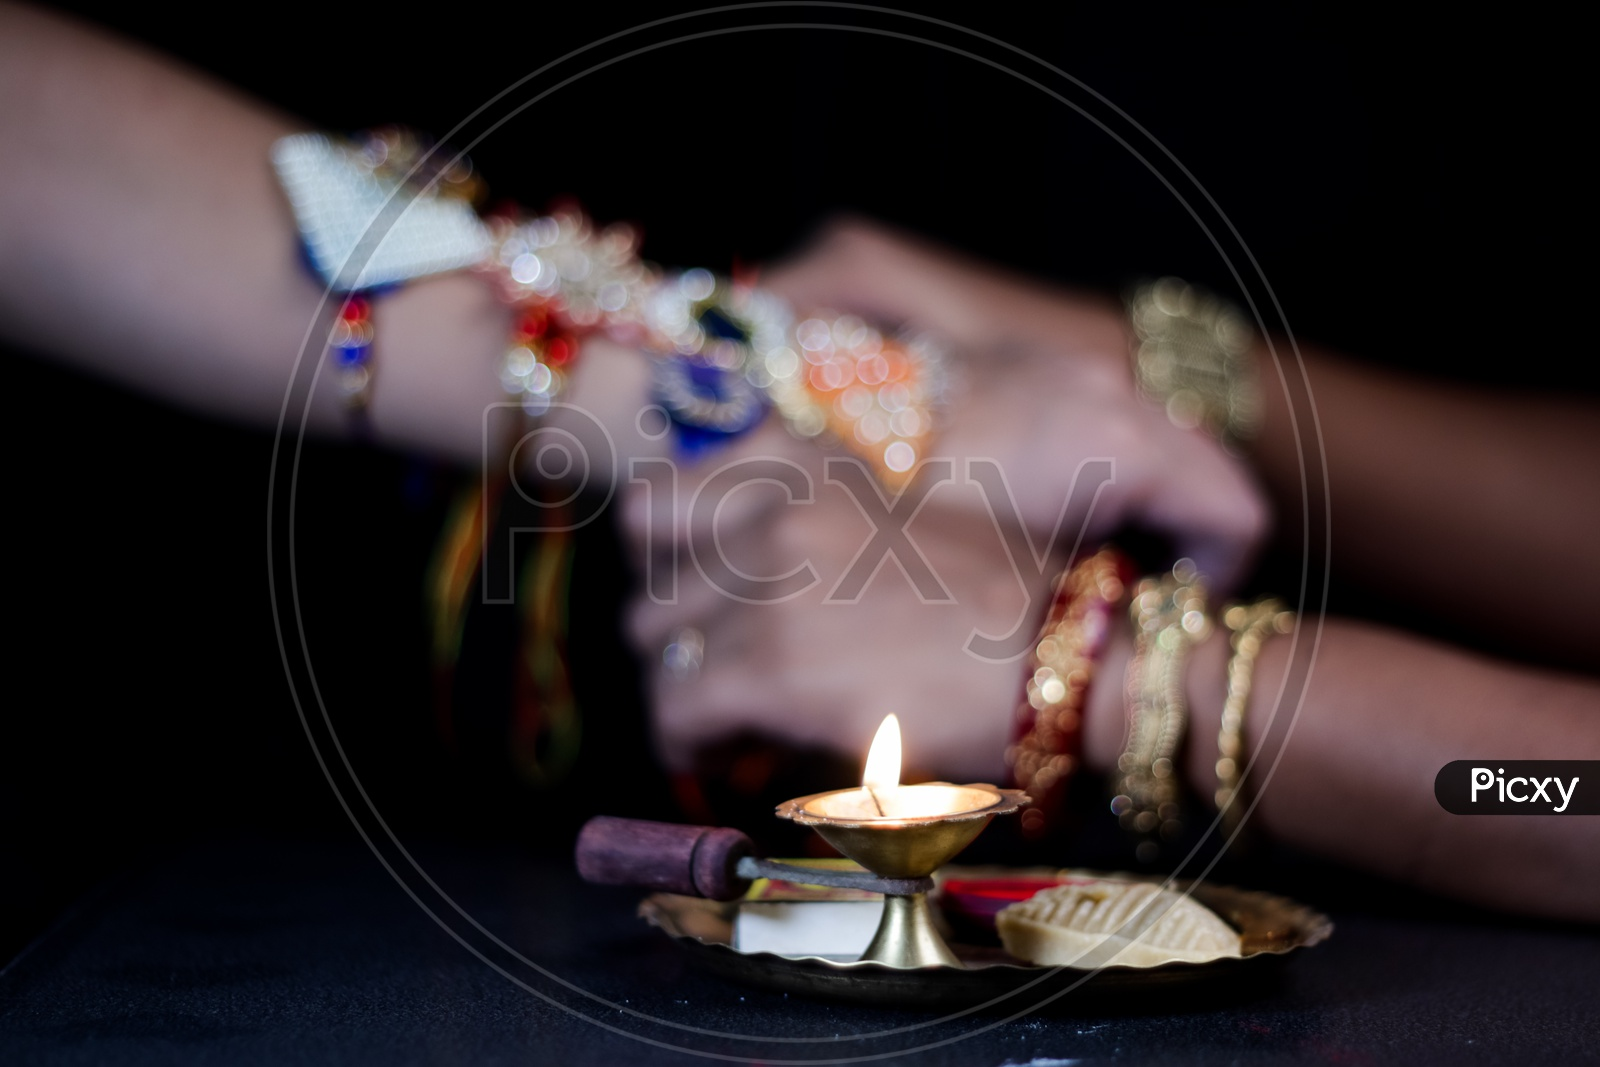 Elegant Rakhi Tied Hand Of a Guy  During Traditional Hindu Festival Raksha bandhan With Dia Bokeh Background